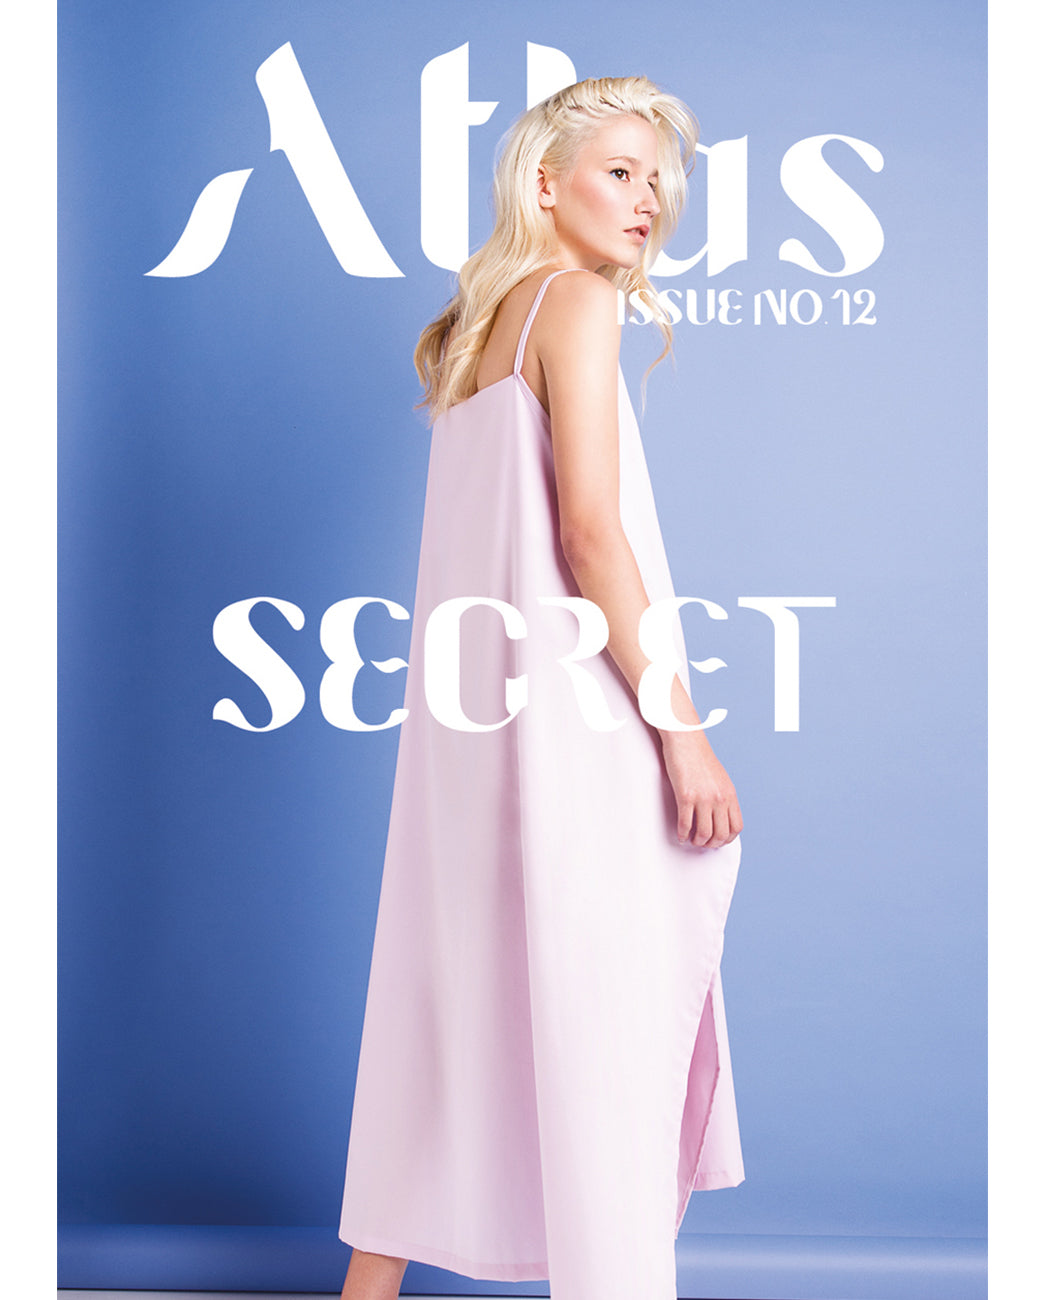 Women's Designer Shoes - Ecstasy Premium Leather Loafers featured in Atlas Magazine